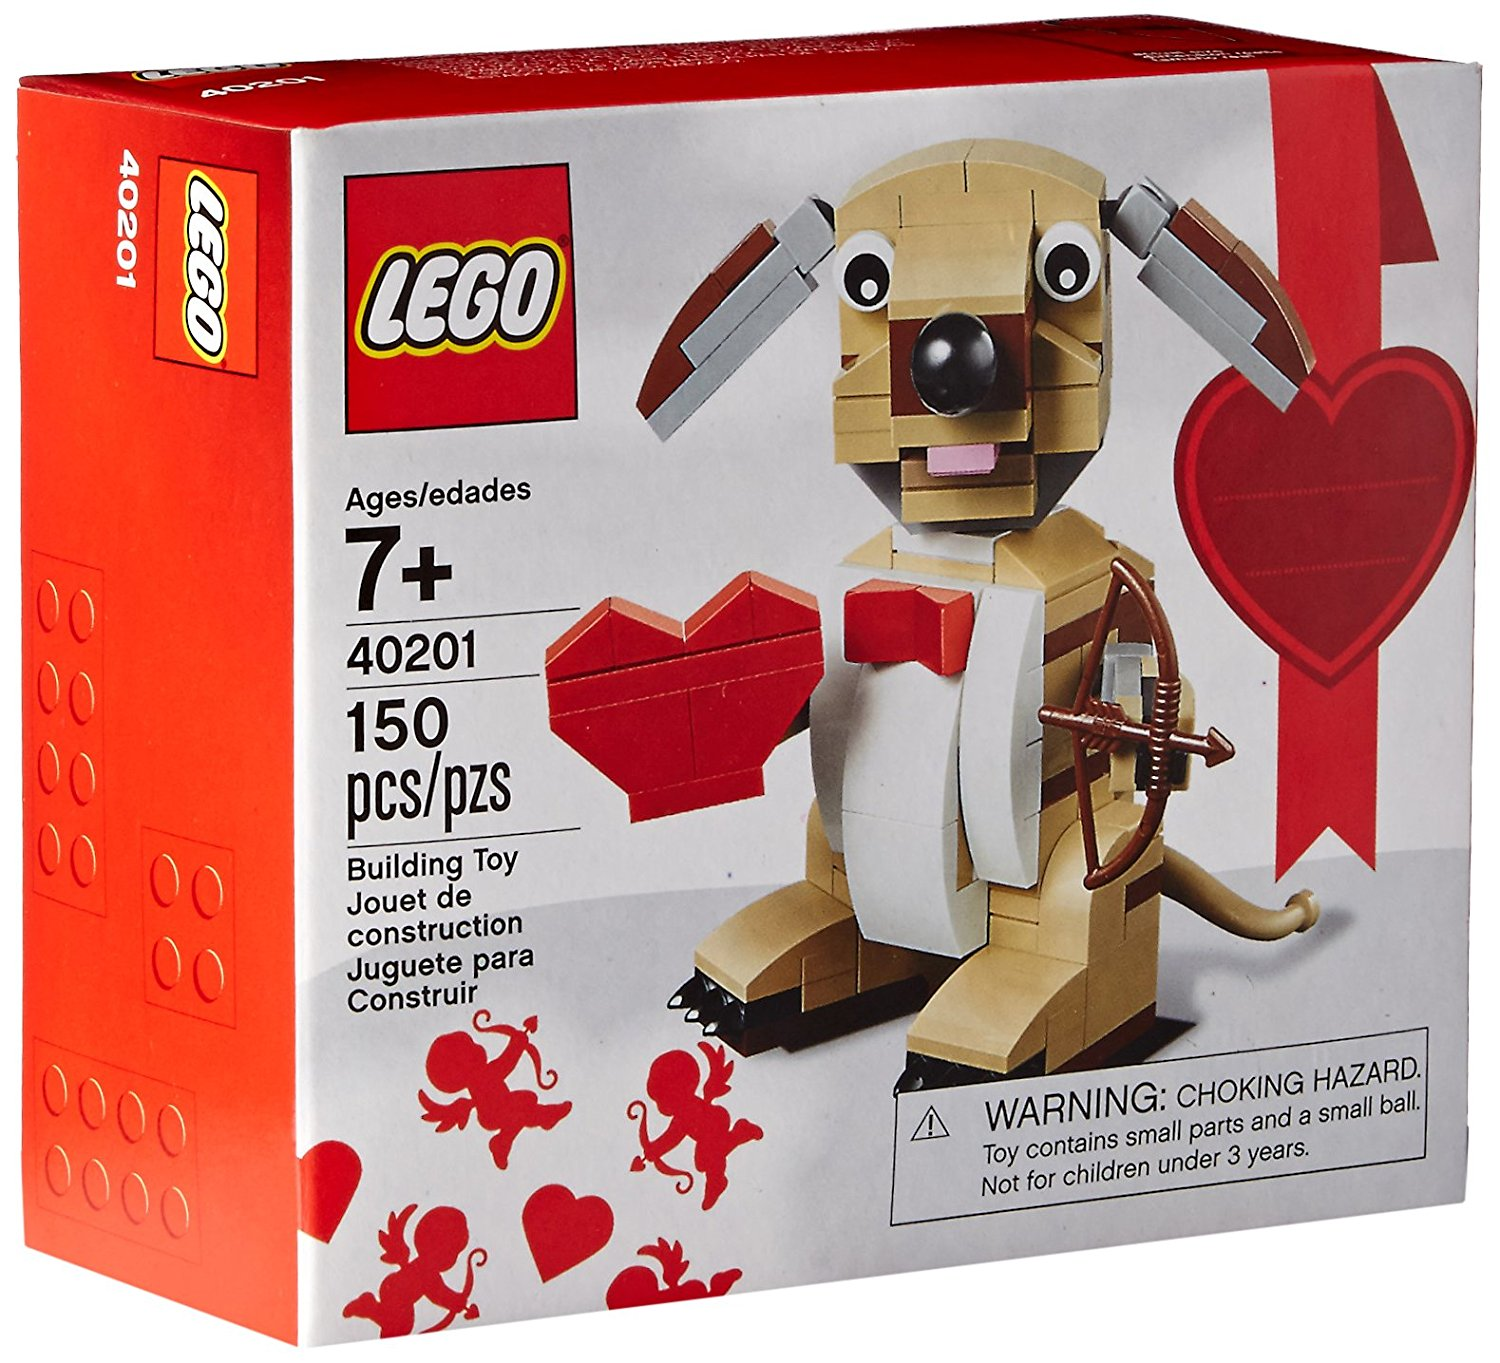 The perfect gift for a LEGO enthusiast! - $